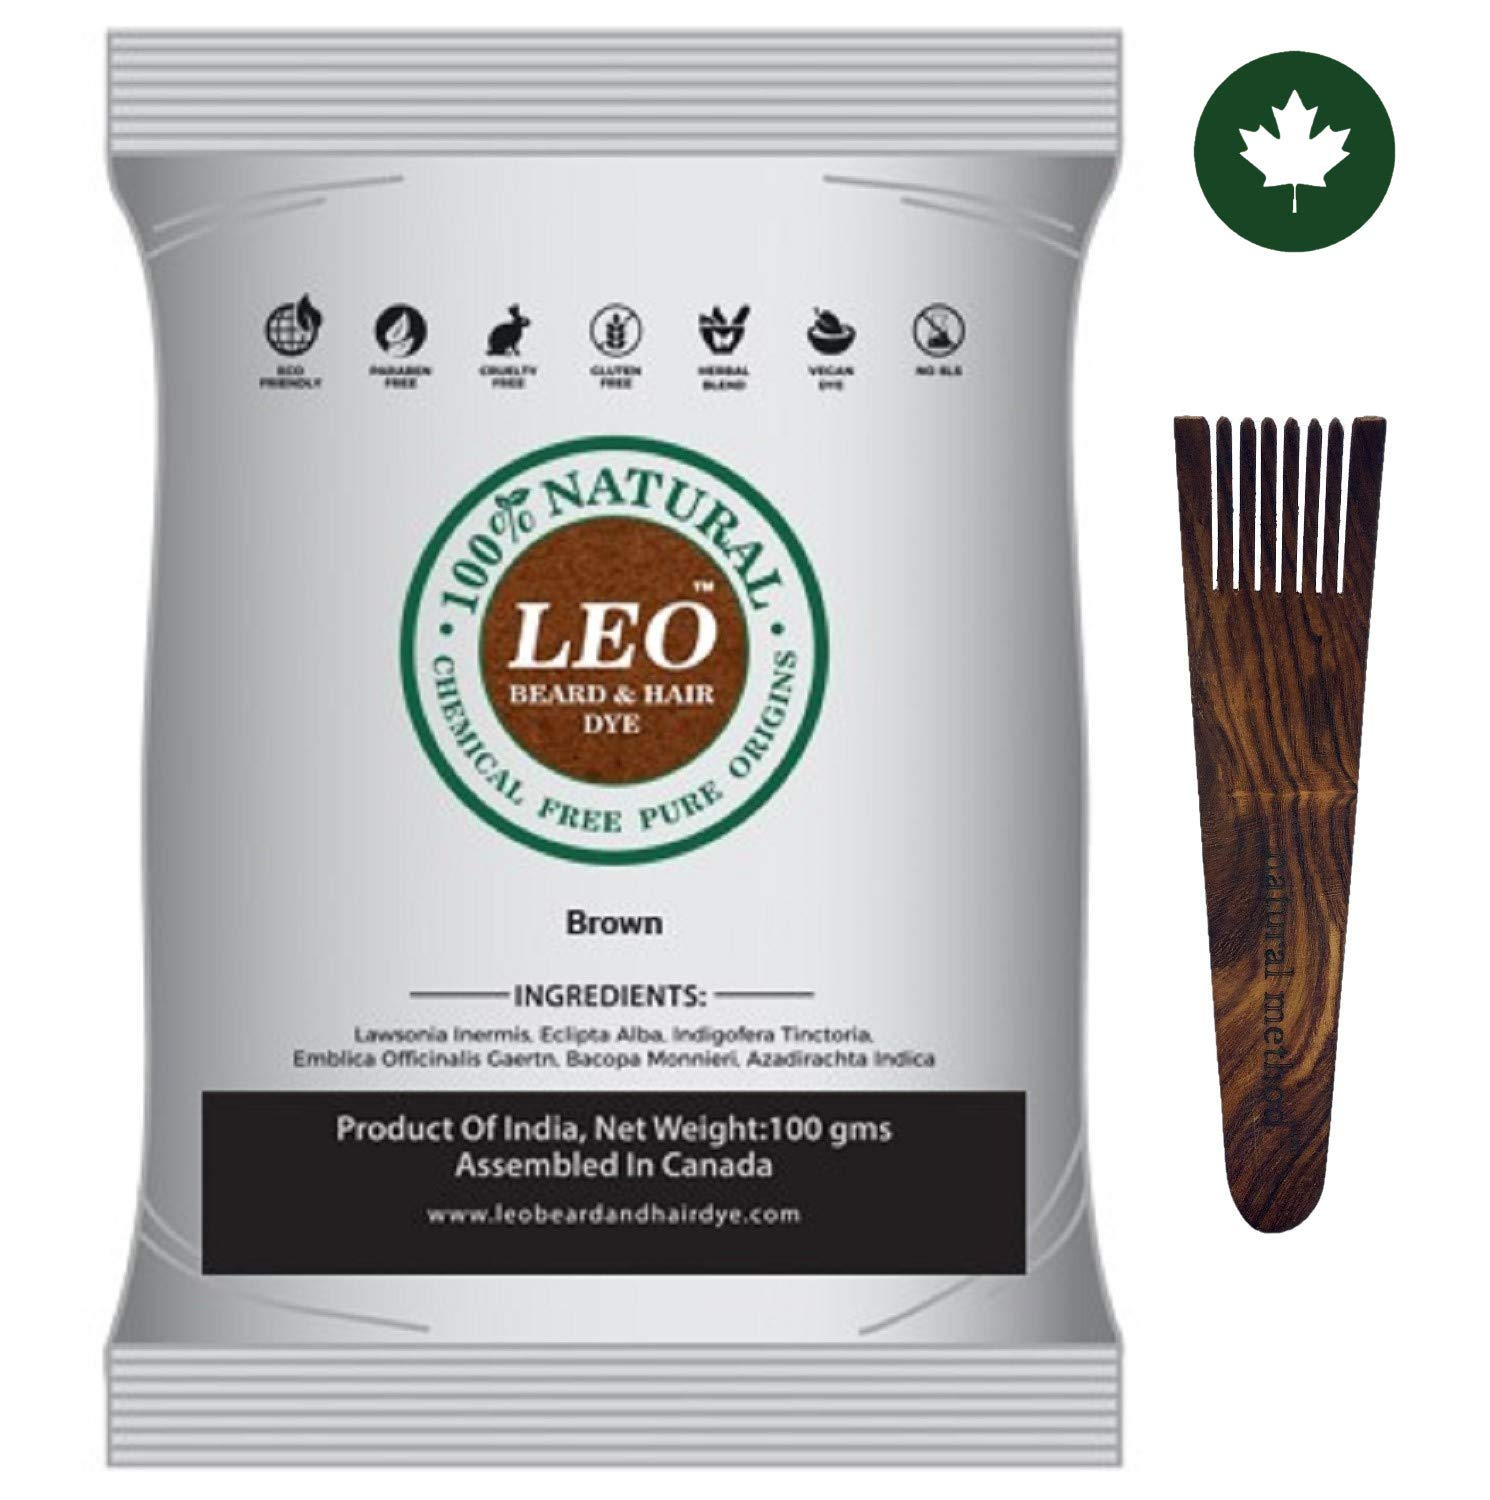 LEO BEARD & HAIR DYE- 100% Natural & Chemical Free Color (BROWN) 3.52 Oz & FREE Wood Applicator LMEI